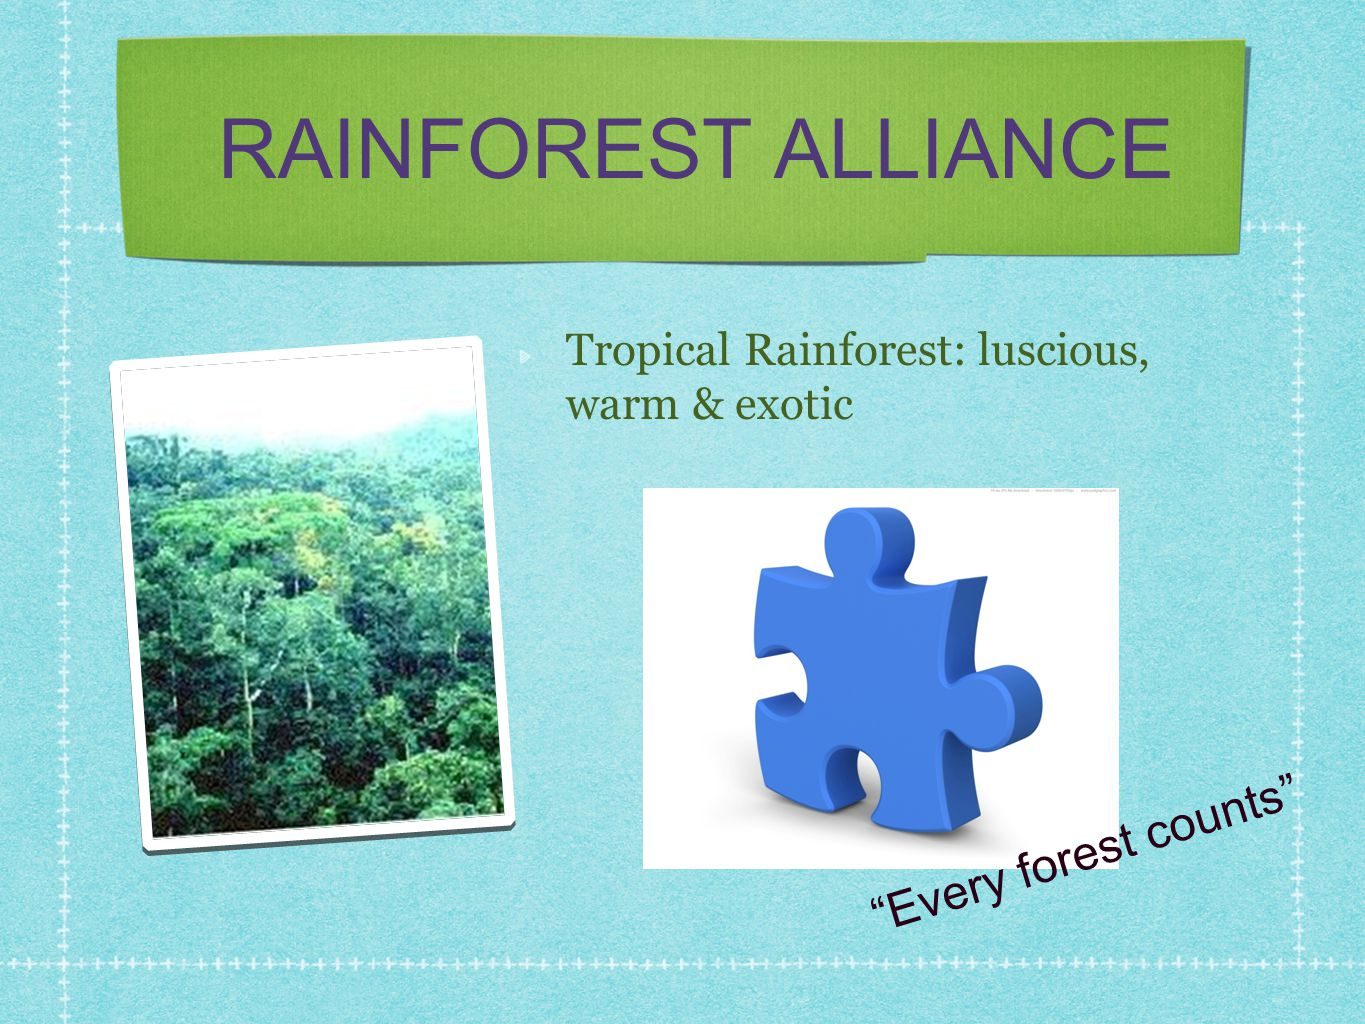 RAINFOREST ALLIANCE Every forest counts